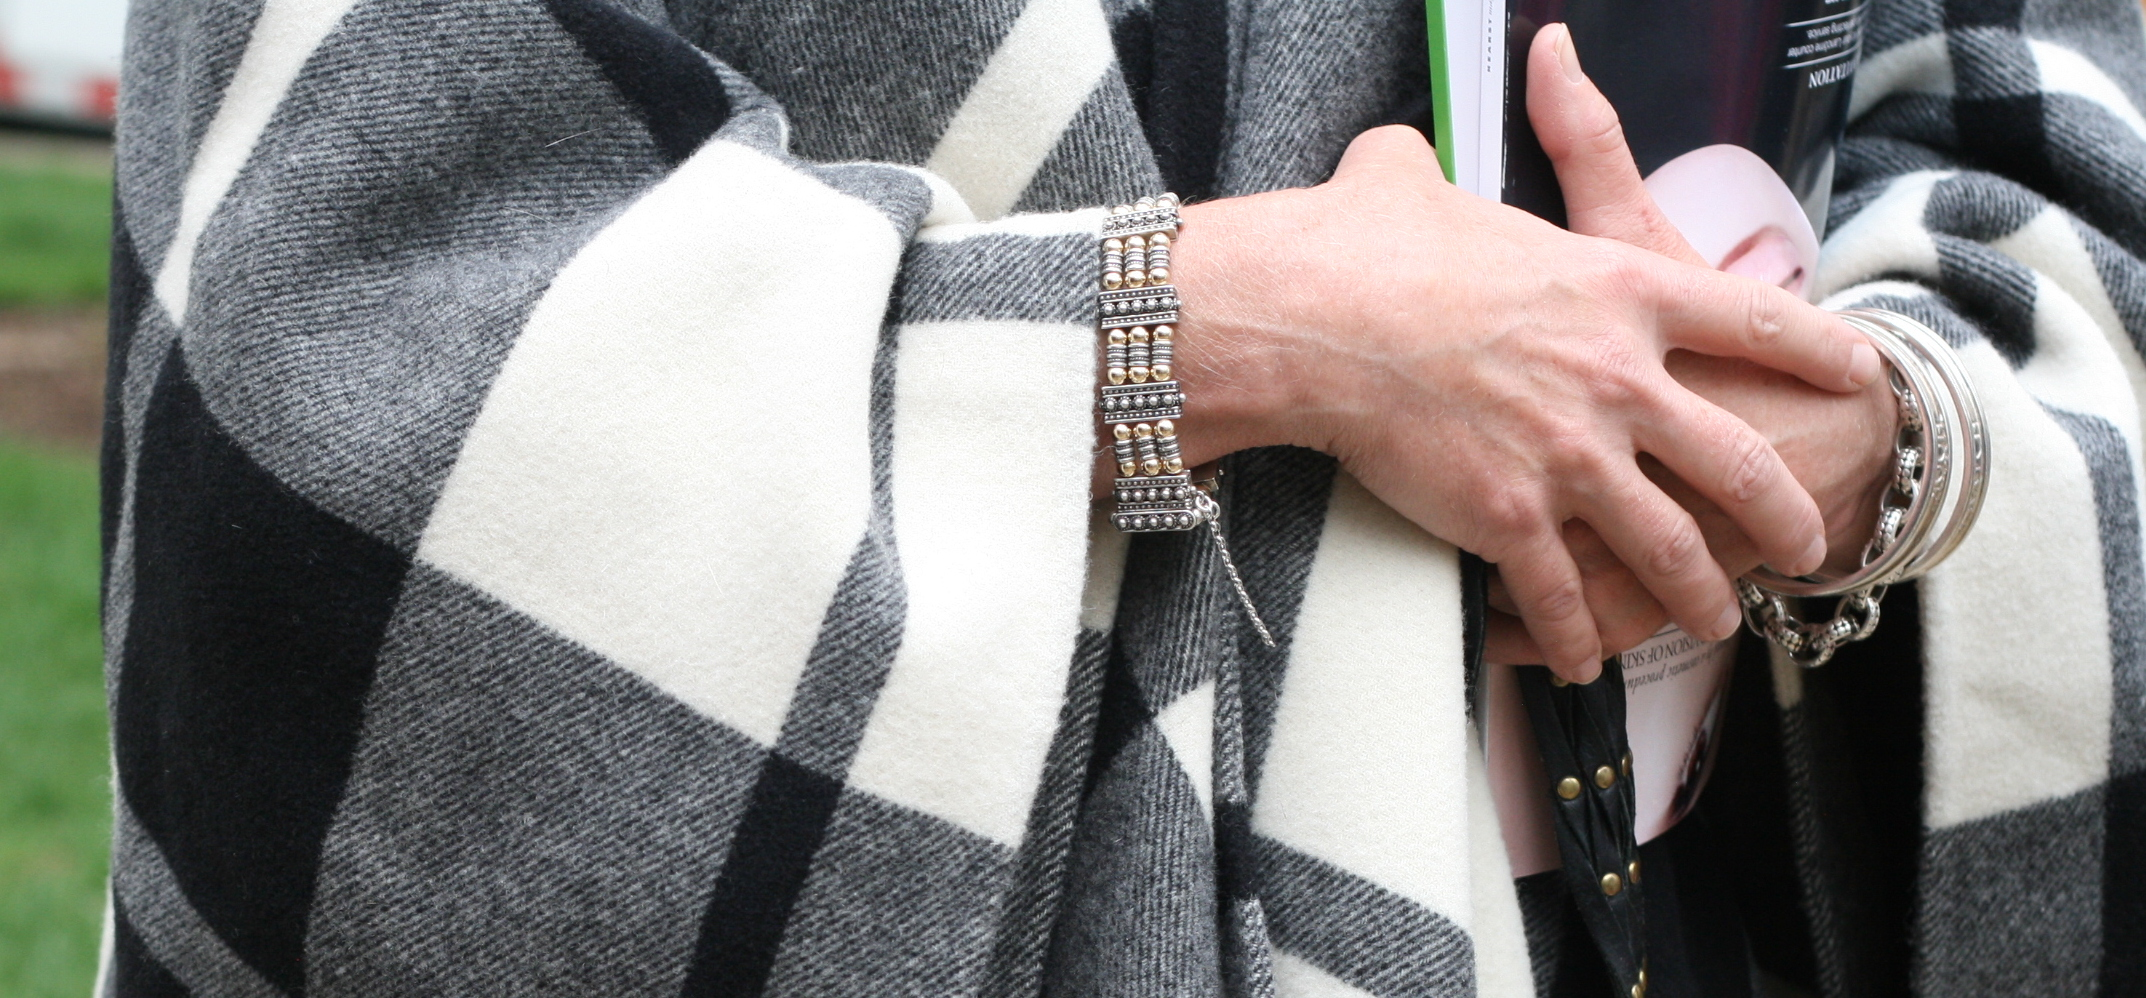 Accessorized with some classic bling, how perfect is this outfit?